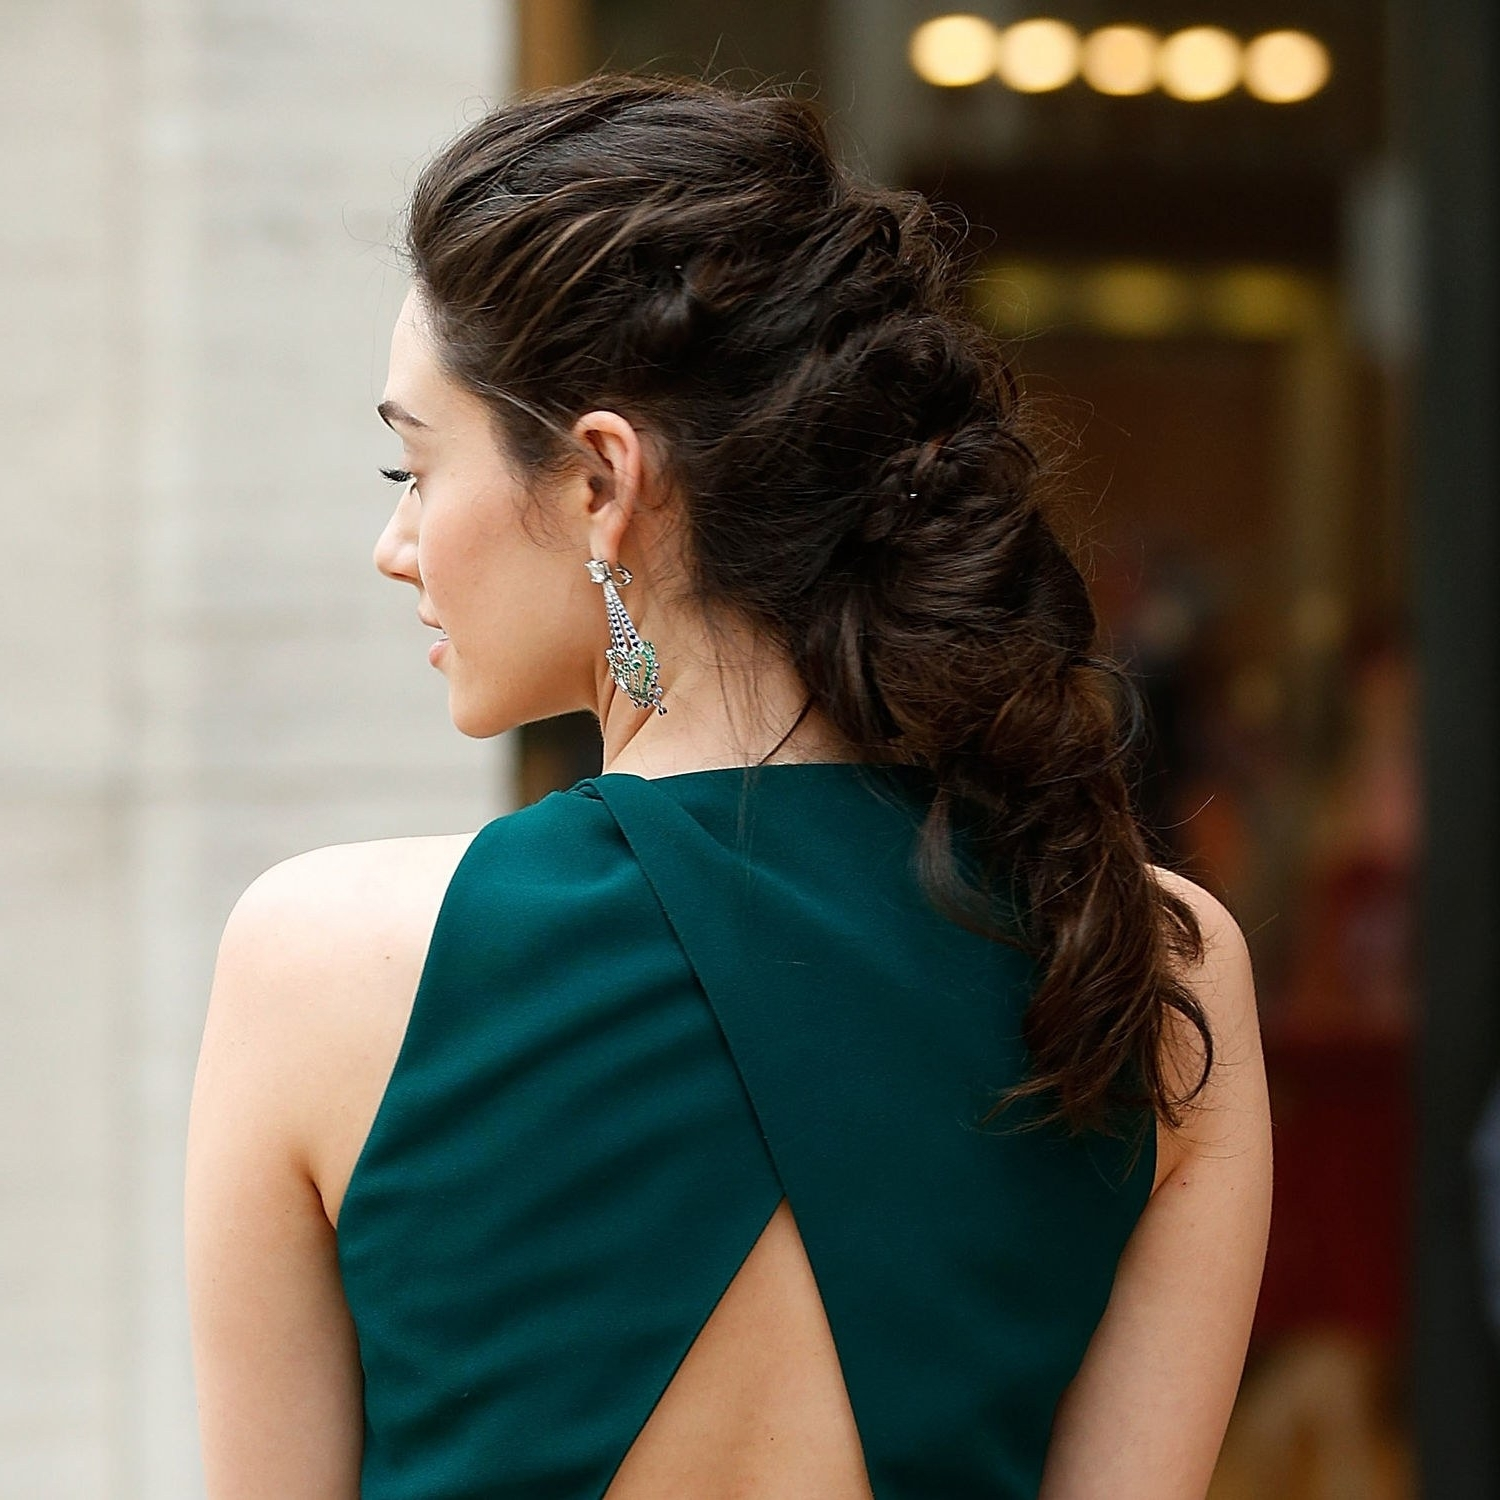 Emmy Rossum Wears A Fierce Braided Hairstyle To A Ballet Spring Gala Pertaining To Current Red Carpet Braided Hairstyles (View 5 of 15)